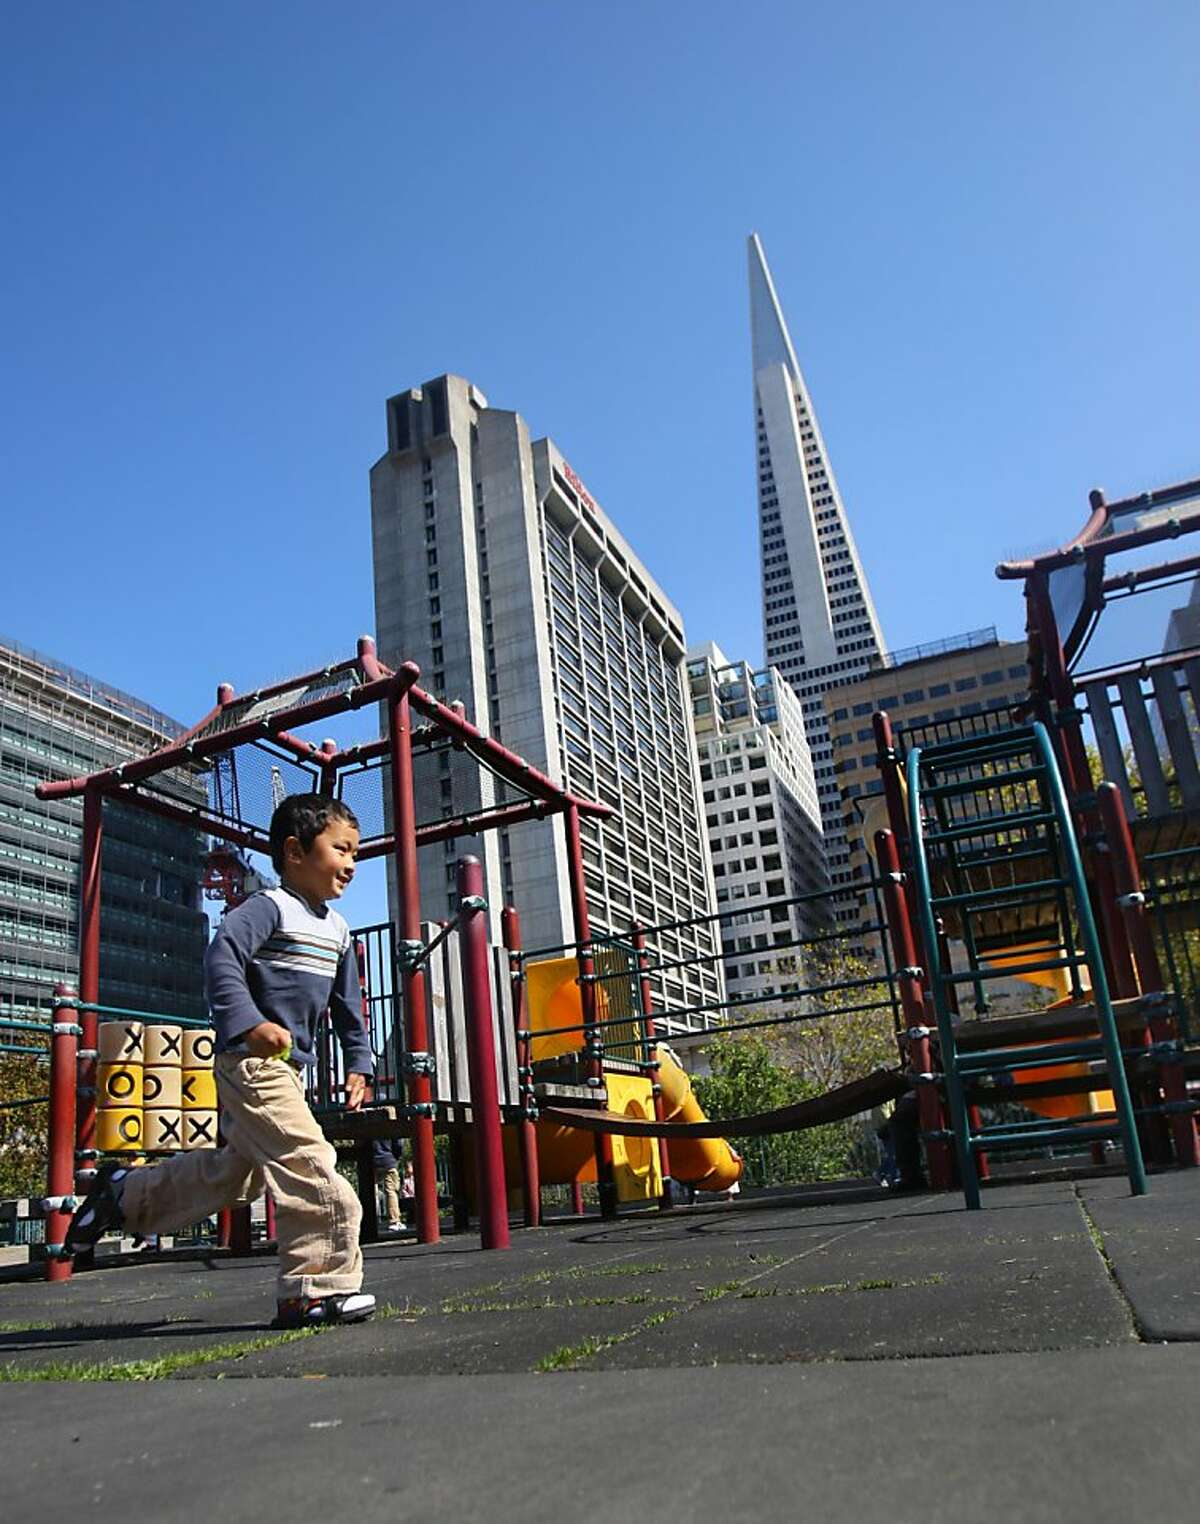 Residents of San Francisco enjoy the sunshine in Portsmouth Square, a popular park in Chinatown in San Francisco, Calif. on Friday, Sept. 30, 2011. The proposed Transbay development project will cast it's shadow across the Square.